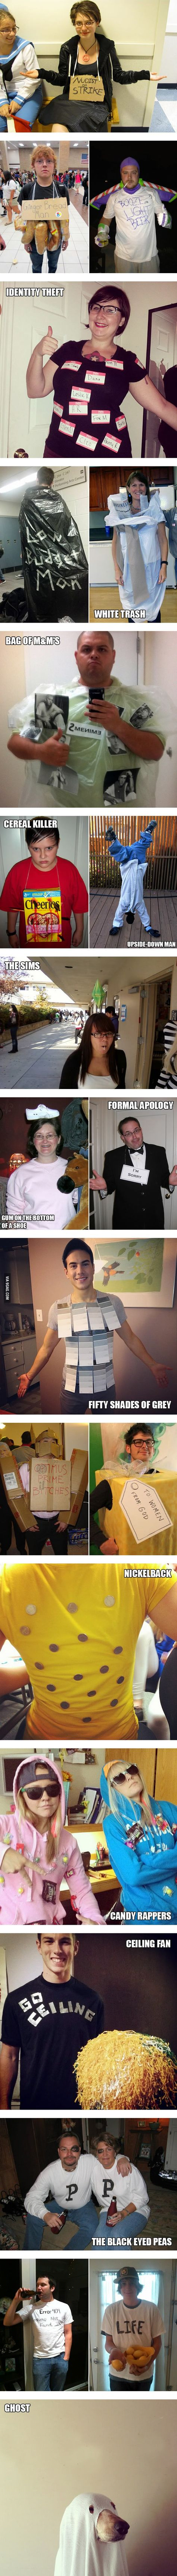 22 Epic Last-Minute Halloween Costume Ideas. I think the Ceiling Fan is my favorite. What's yours?